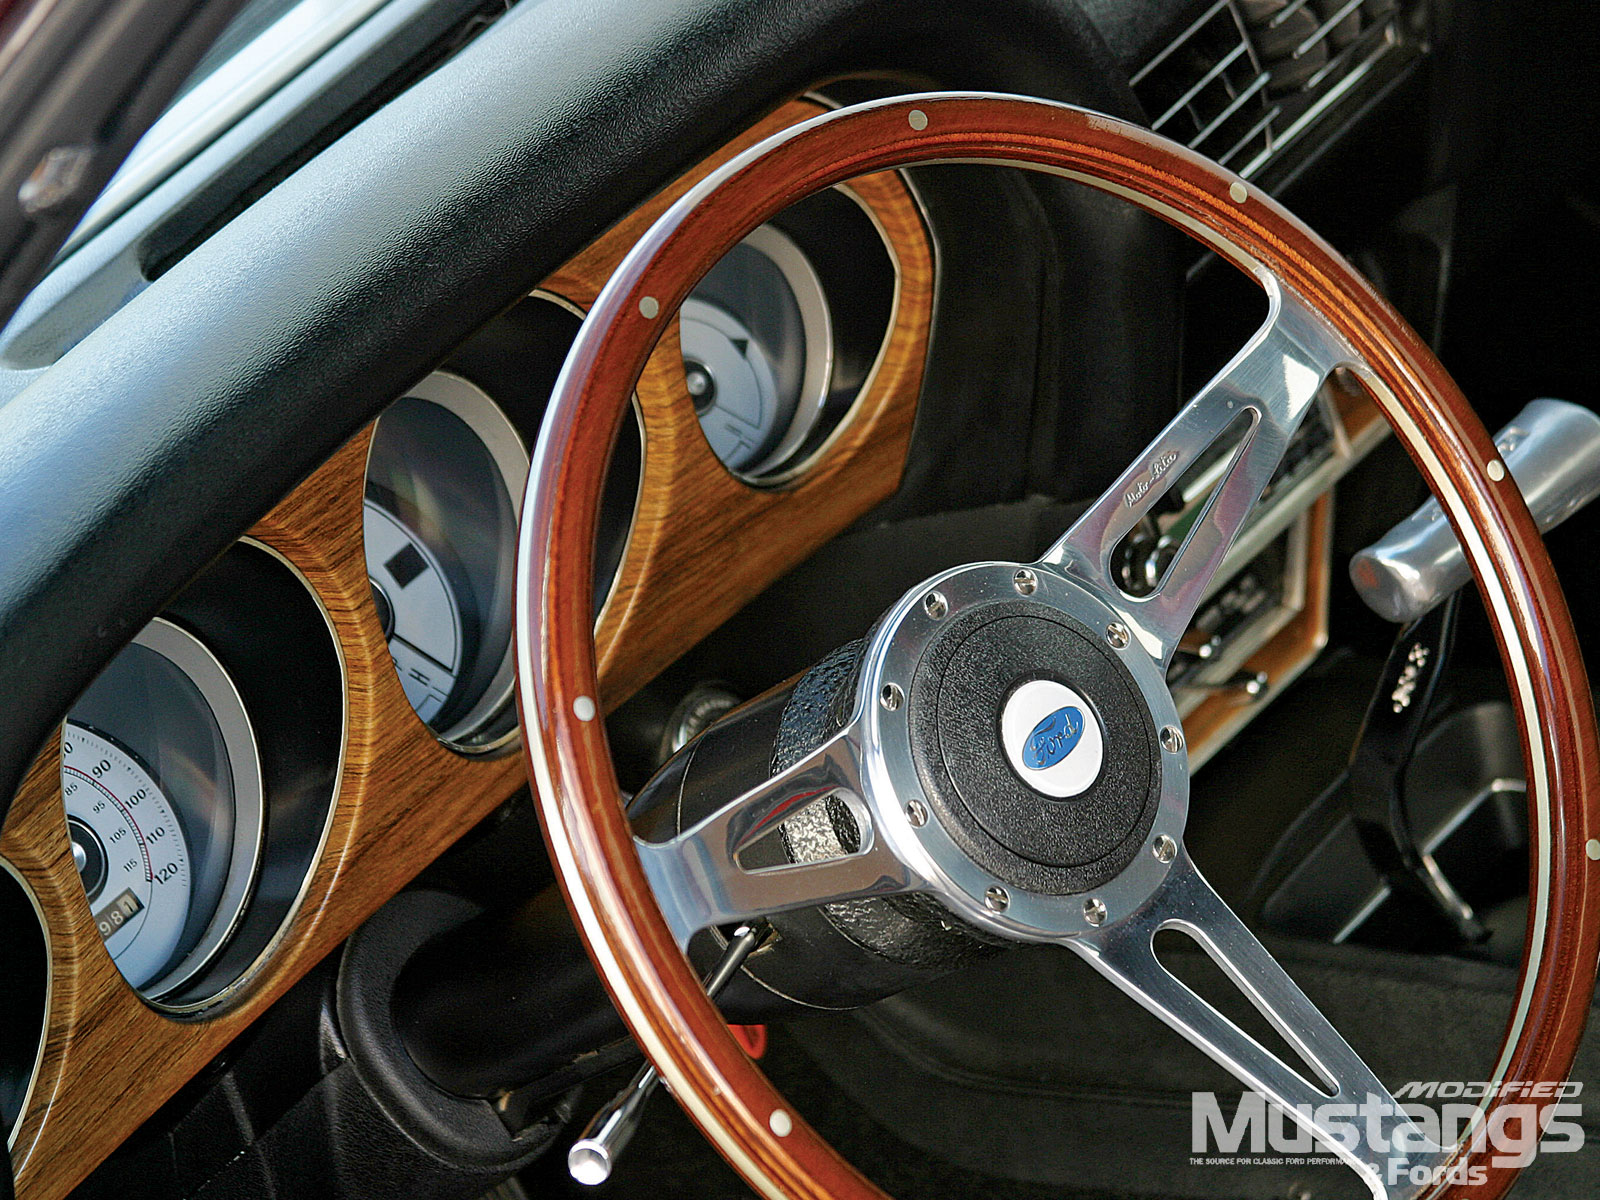 1969 Ford Mustang Mach 1 Sterring Wheel